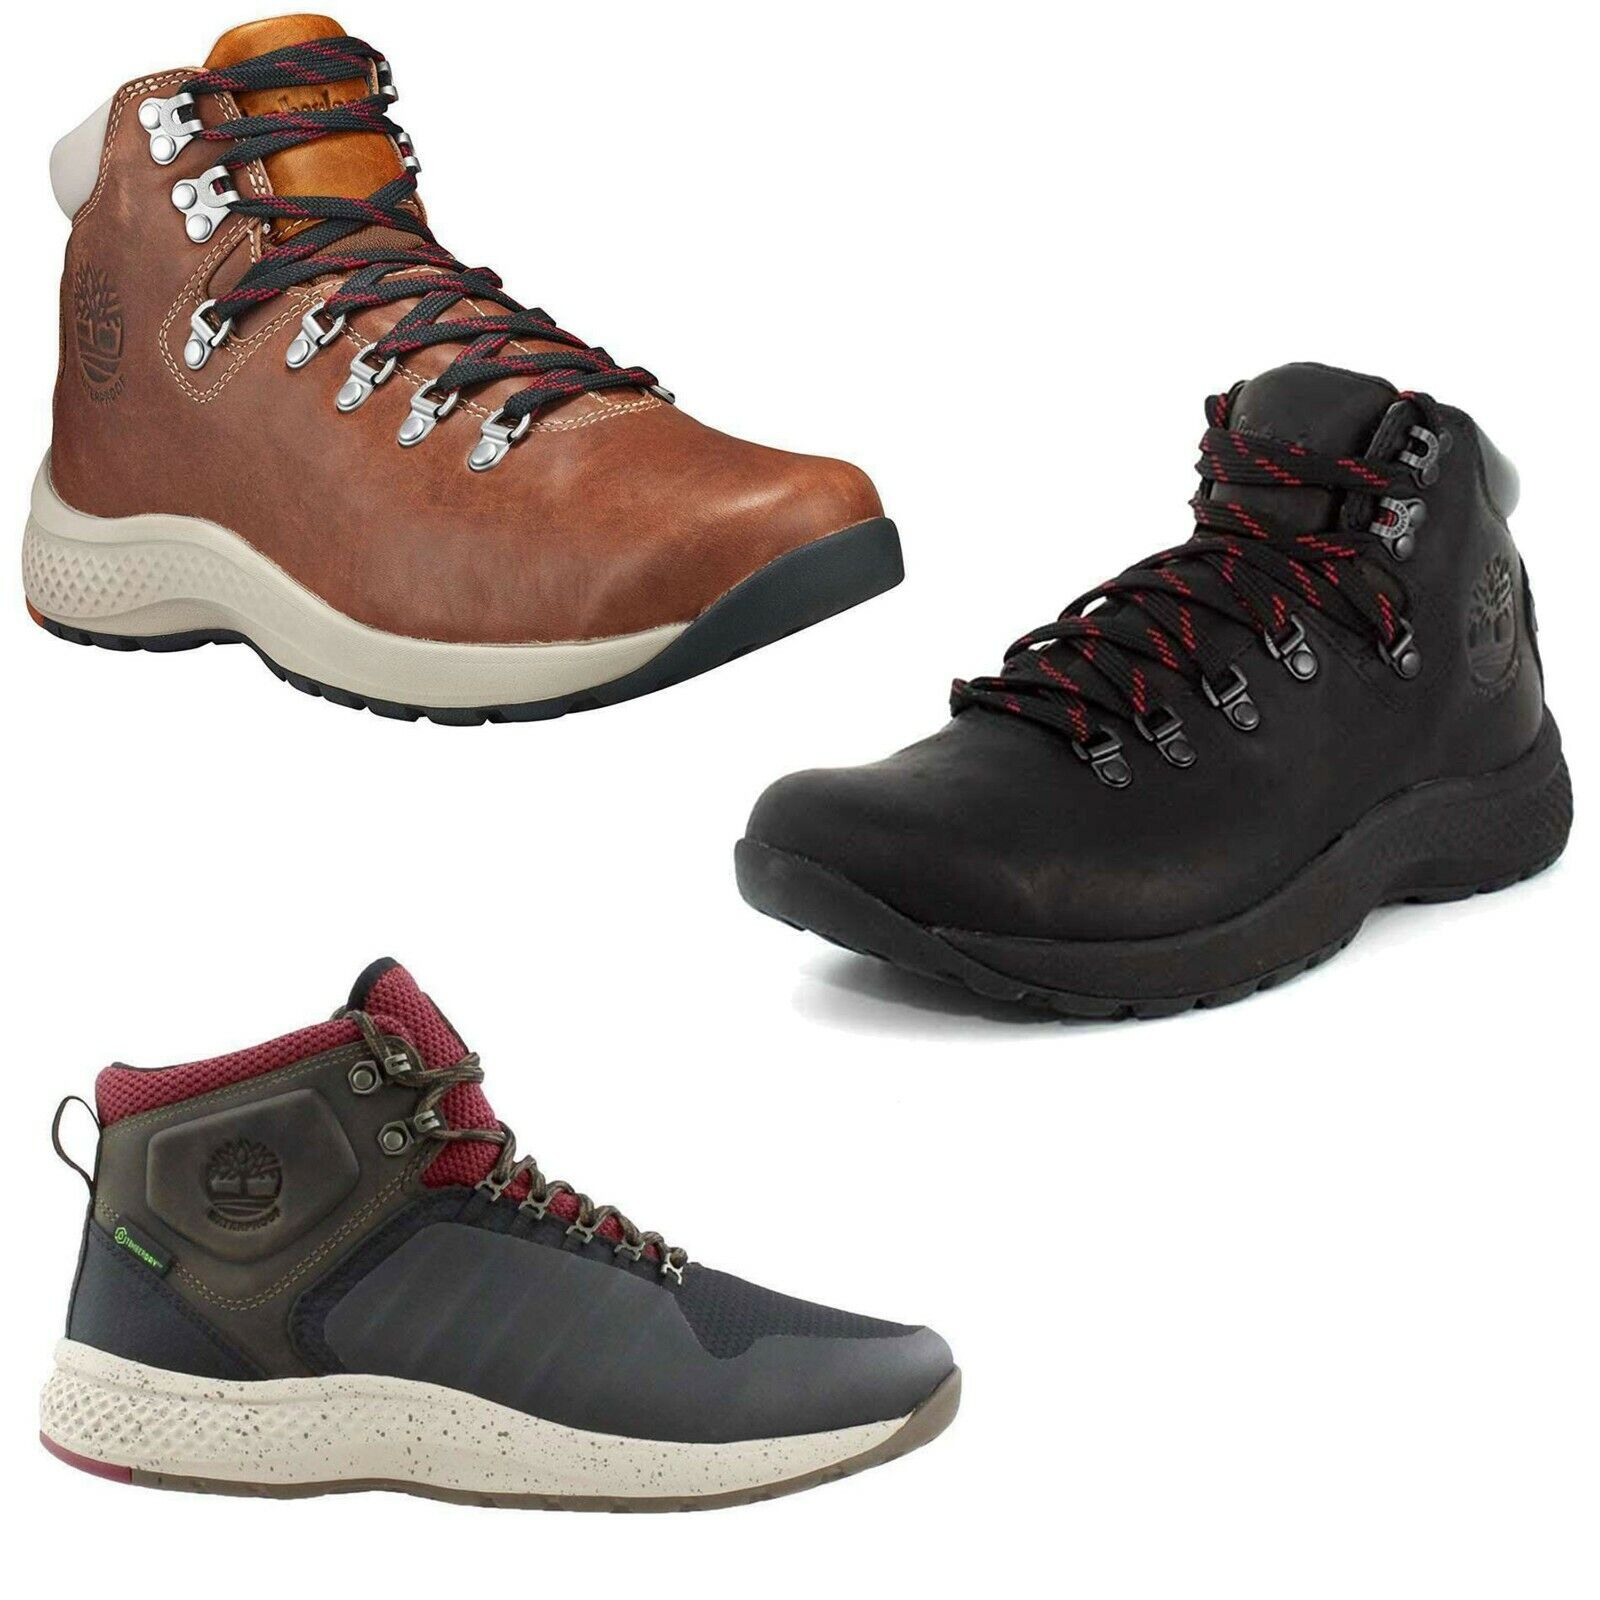 Timberland Men's Flyroam Trail Waterproof Leather Mid Hiking Boots Hiker Shoes